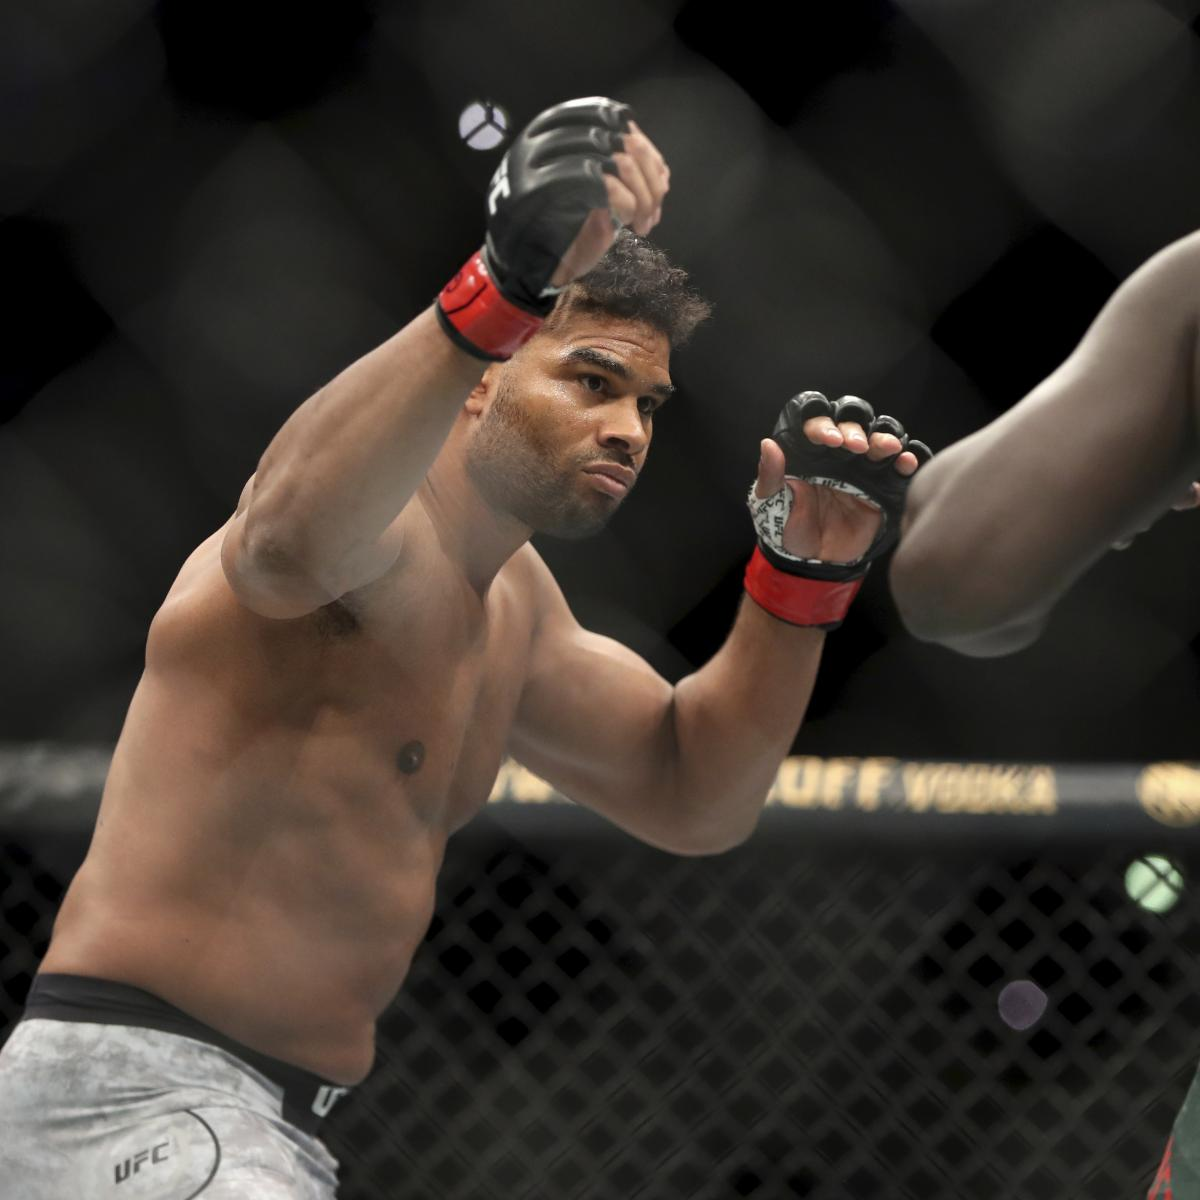 Ufc Fight Night 176 Results Overeem Saint Preux Headline Main Card Winners Bleacher Report Latest News Videos And Highlights